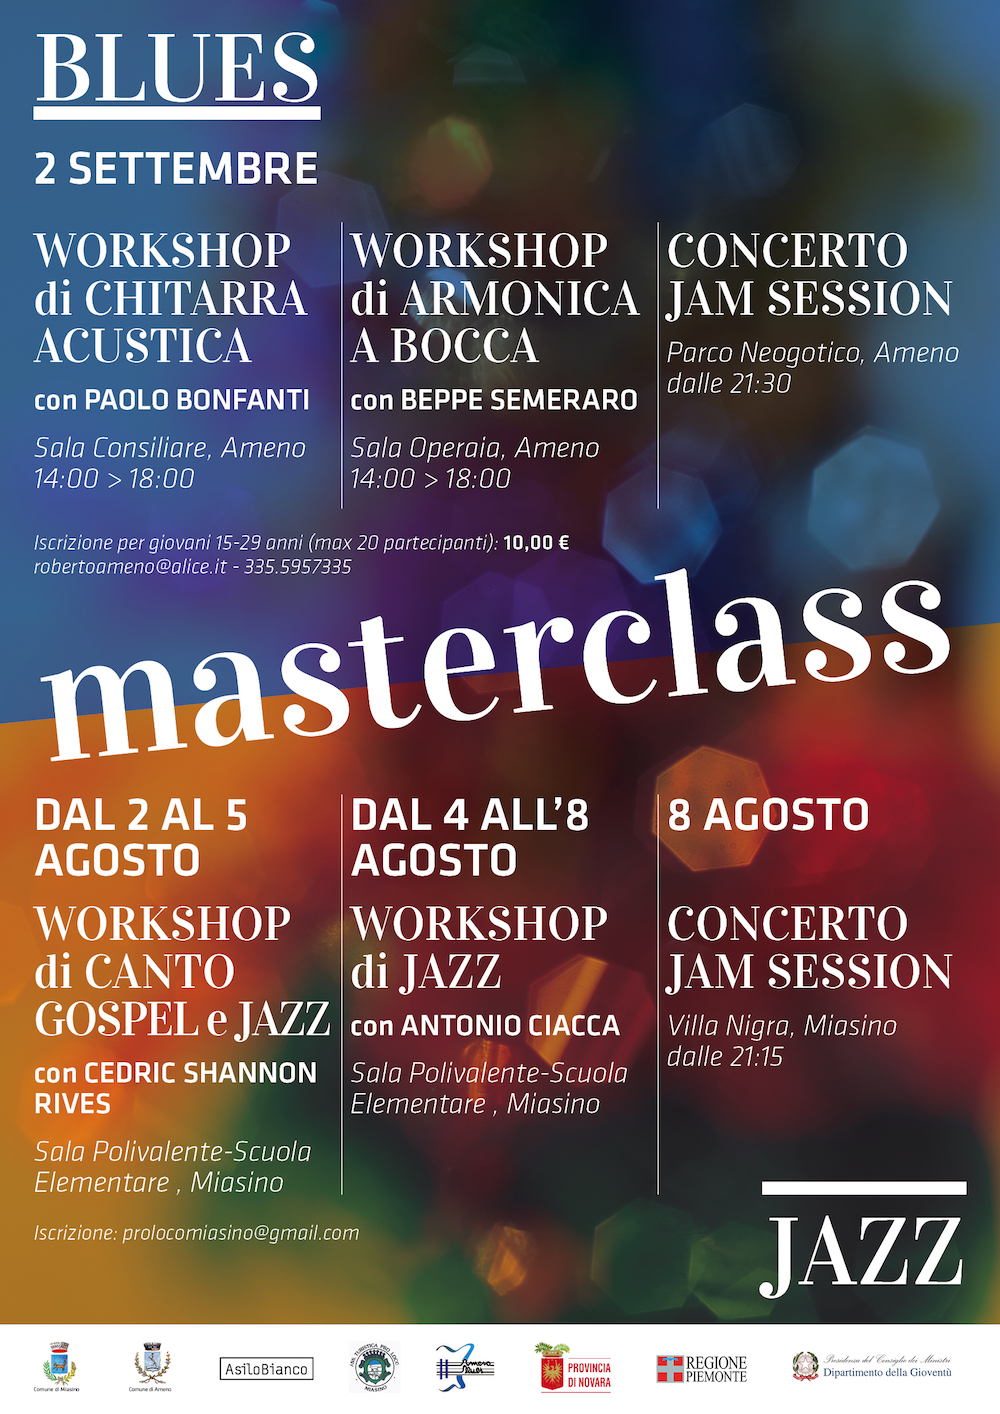 Masterclass-blues-ameno